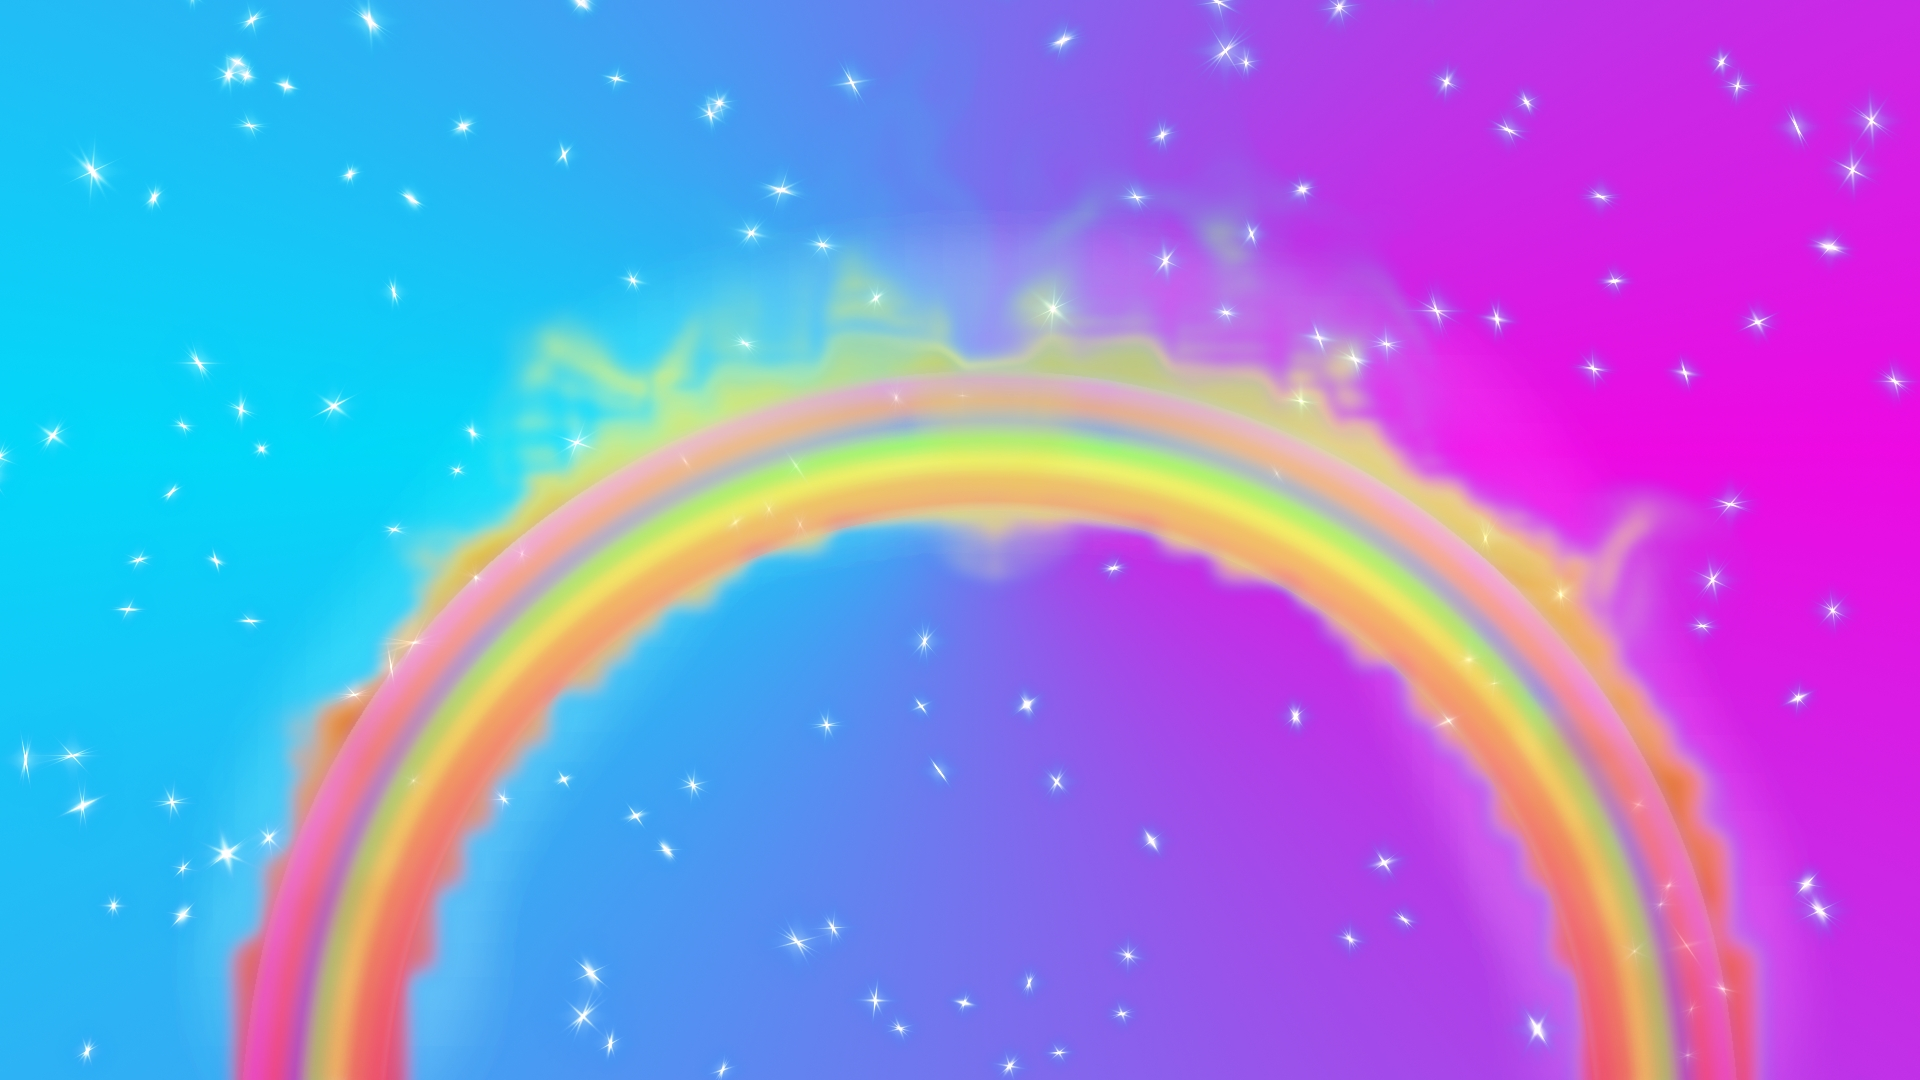 Rainbow Desktop Background - WallpaperSafari